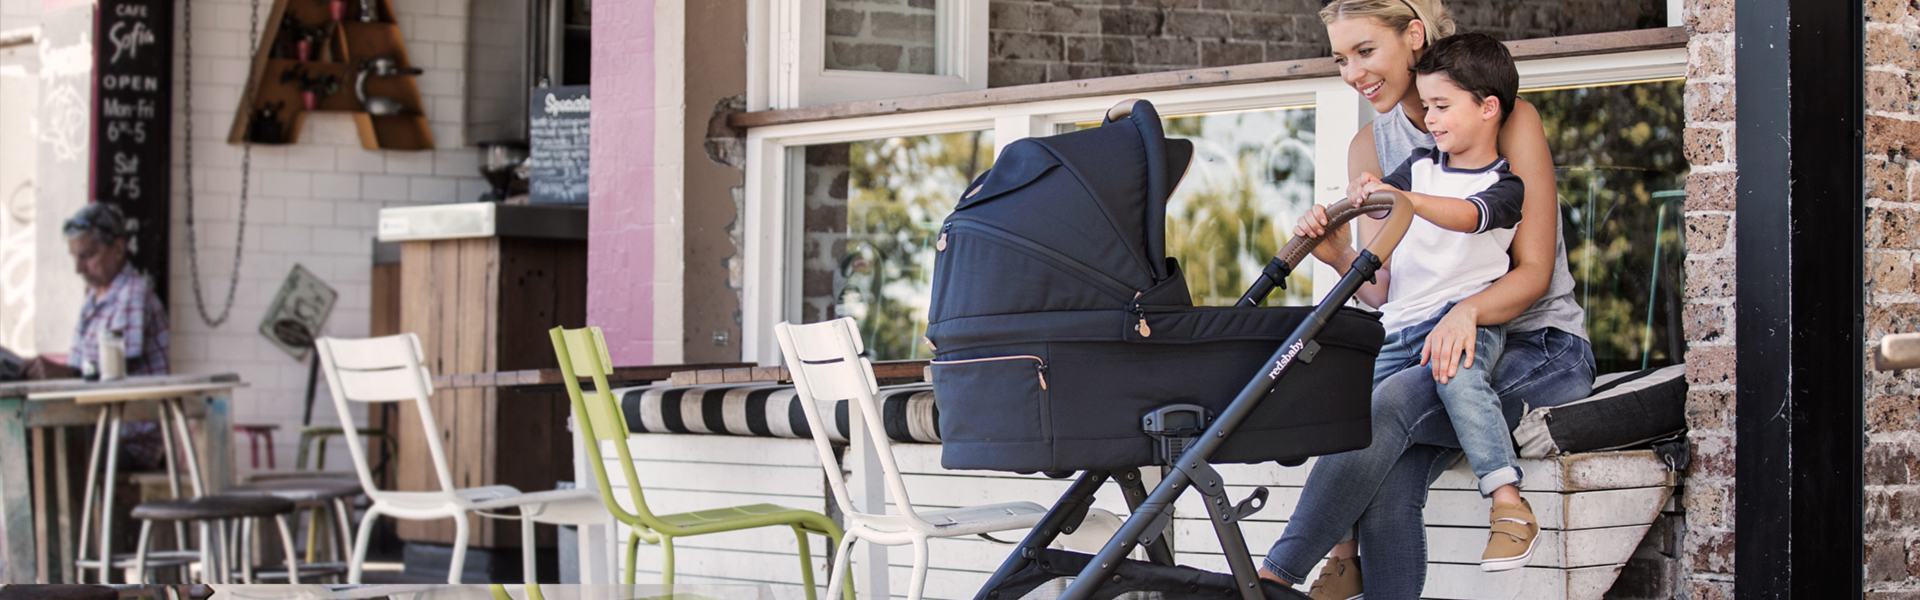 Our guide to choosing the best travel stroller 2018 family.